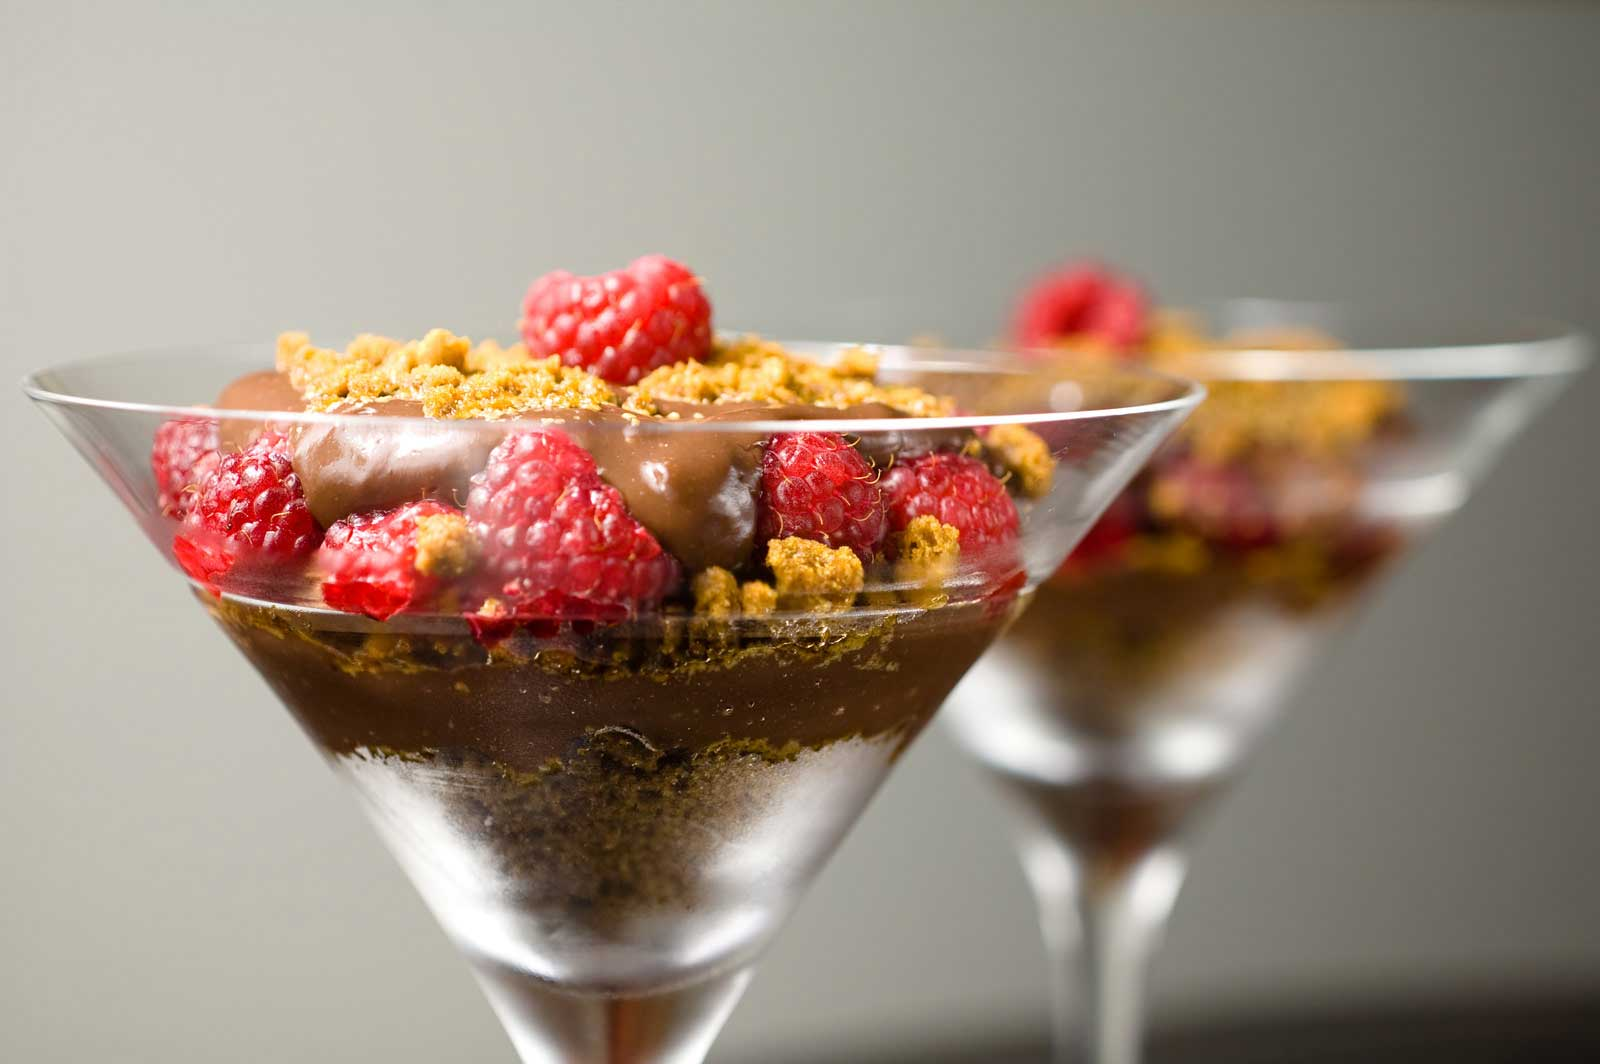 Recipe For Chocolate Pudding With Raspberries And